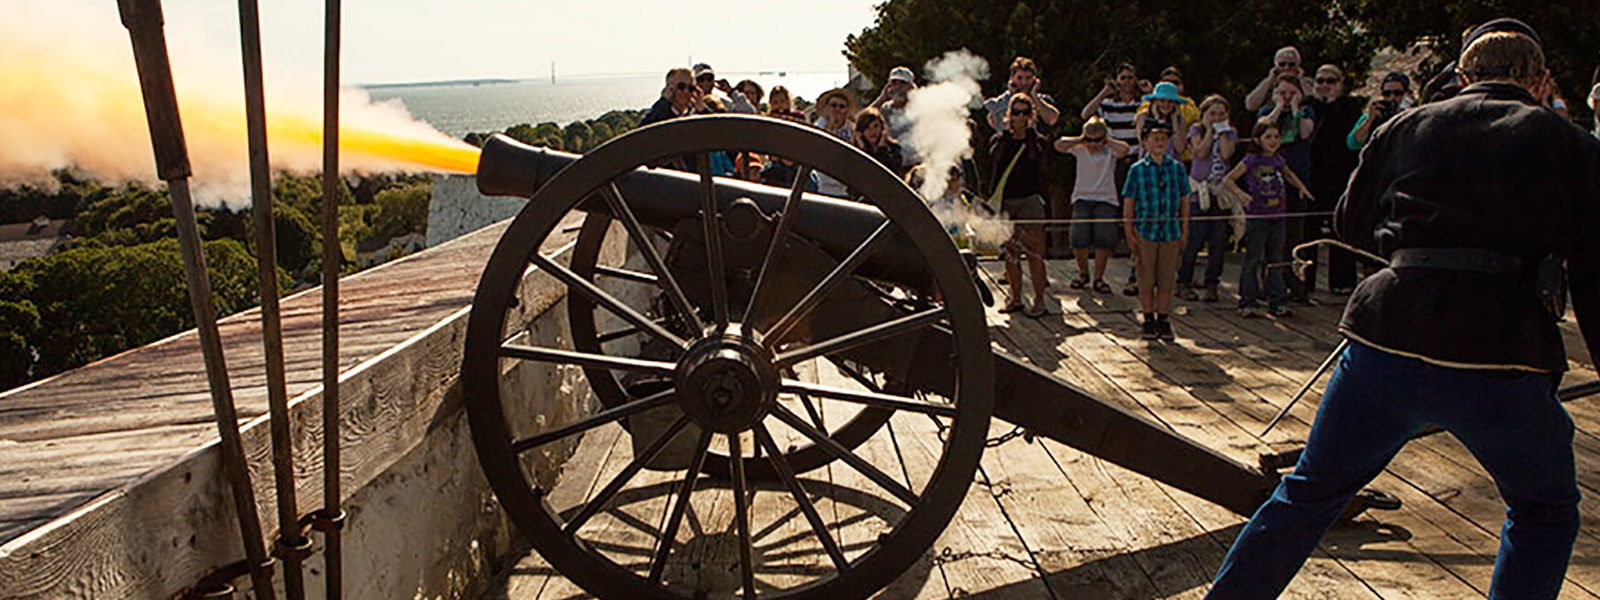 Photo of a cannon being fired at Fort Mackinac on Mackinac Island